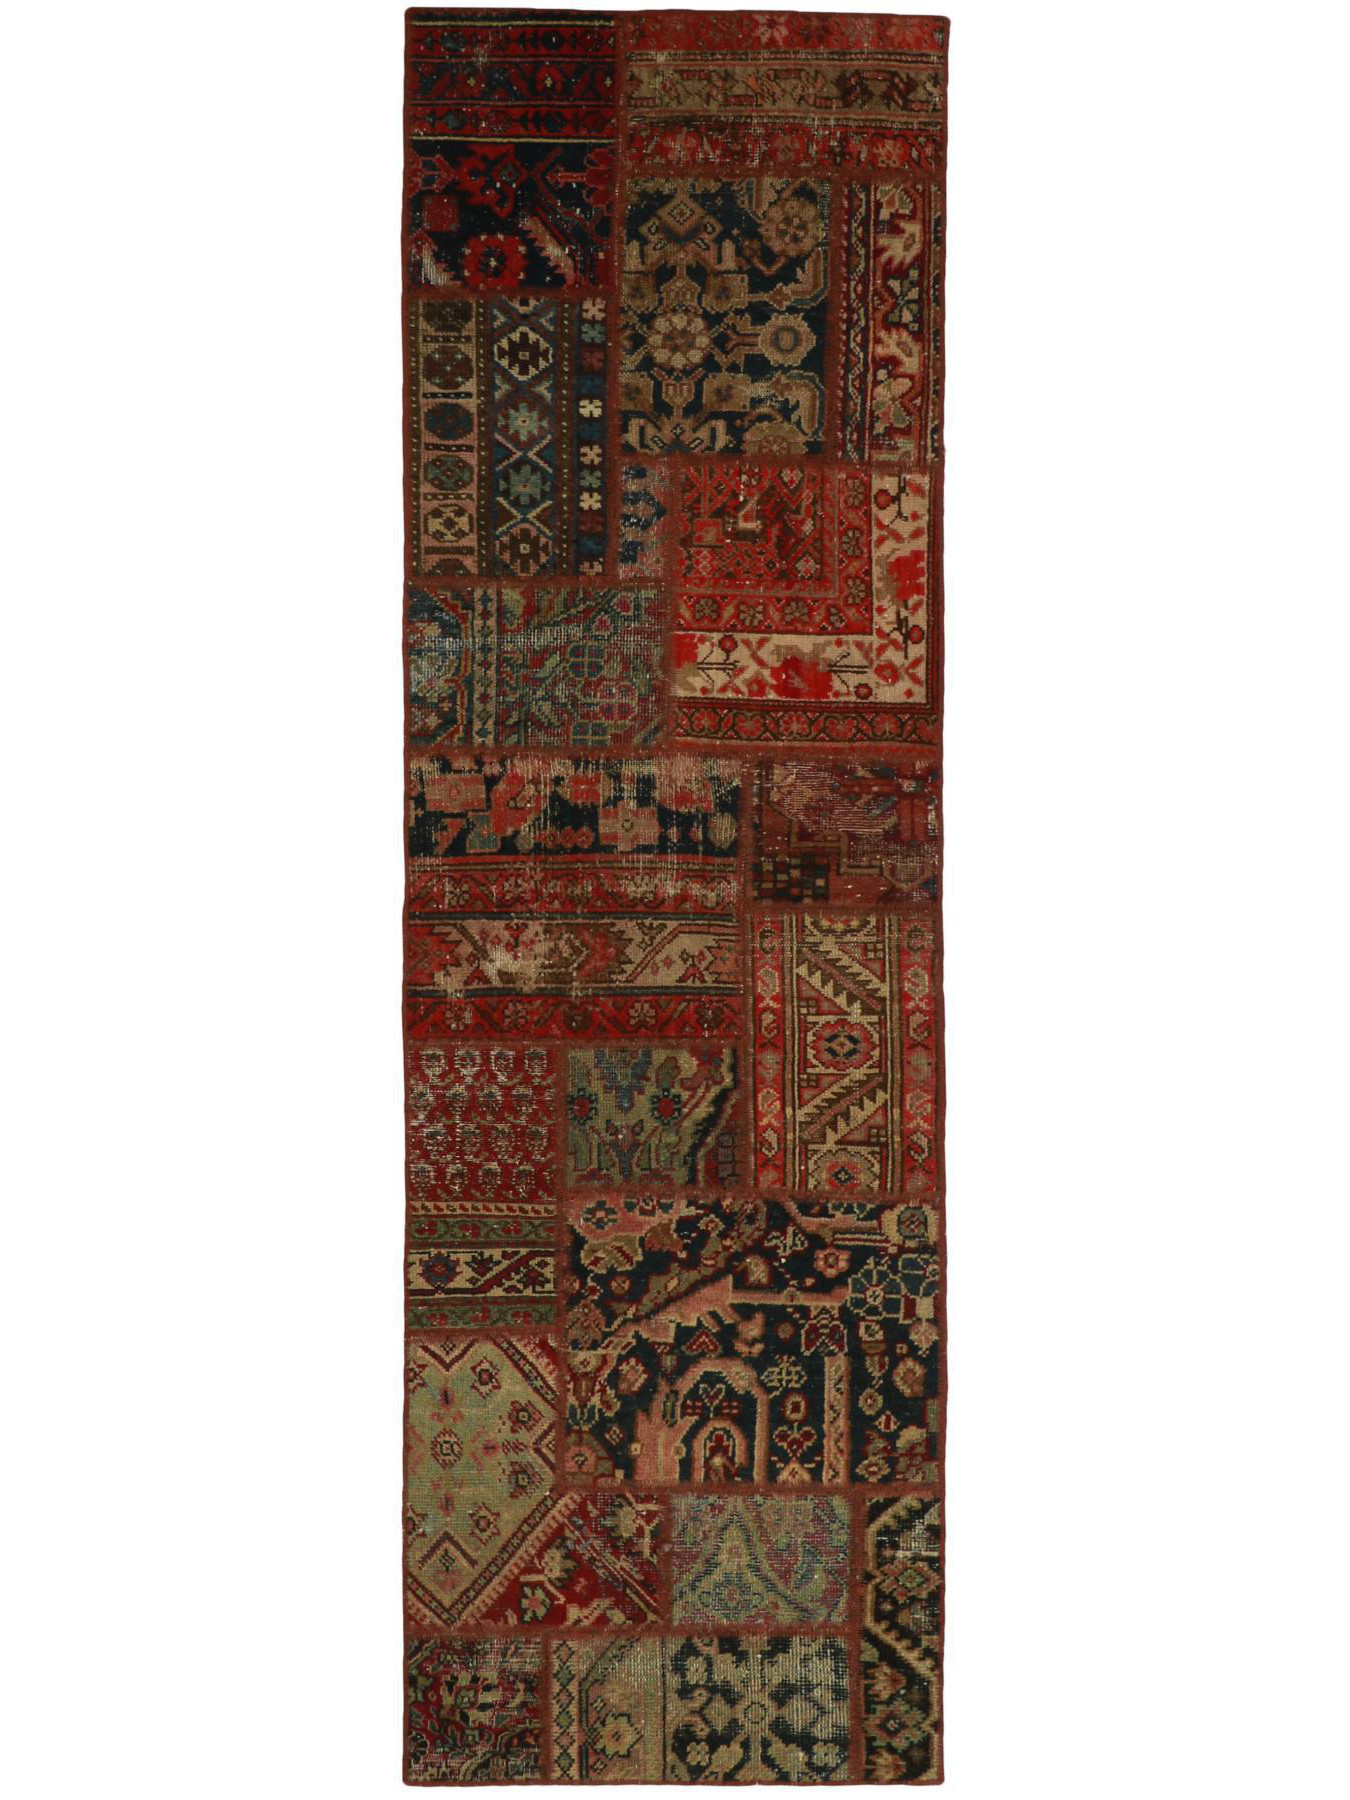 Vintage Patchwork - Vintage Persian Royal Patchwork Malayer